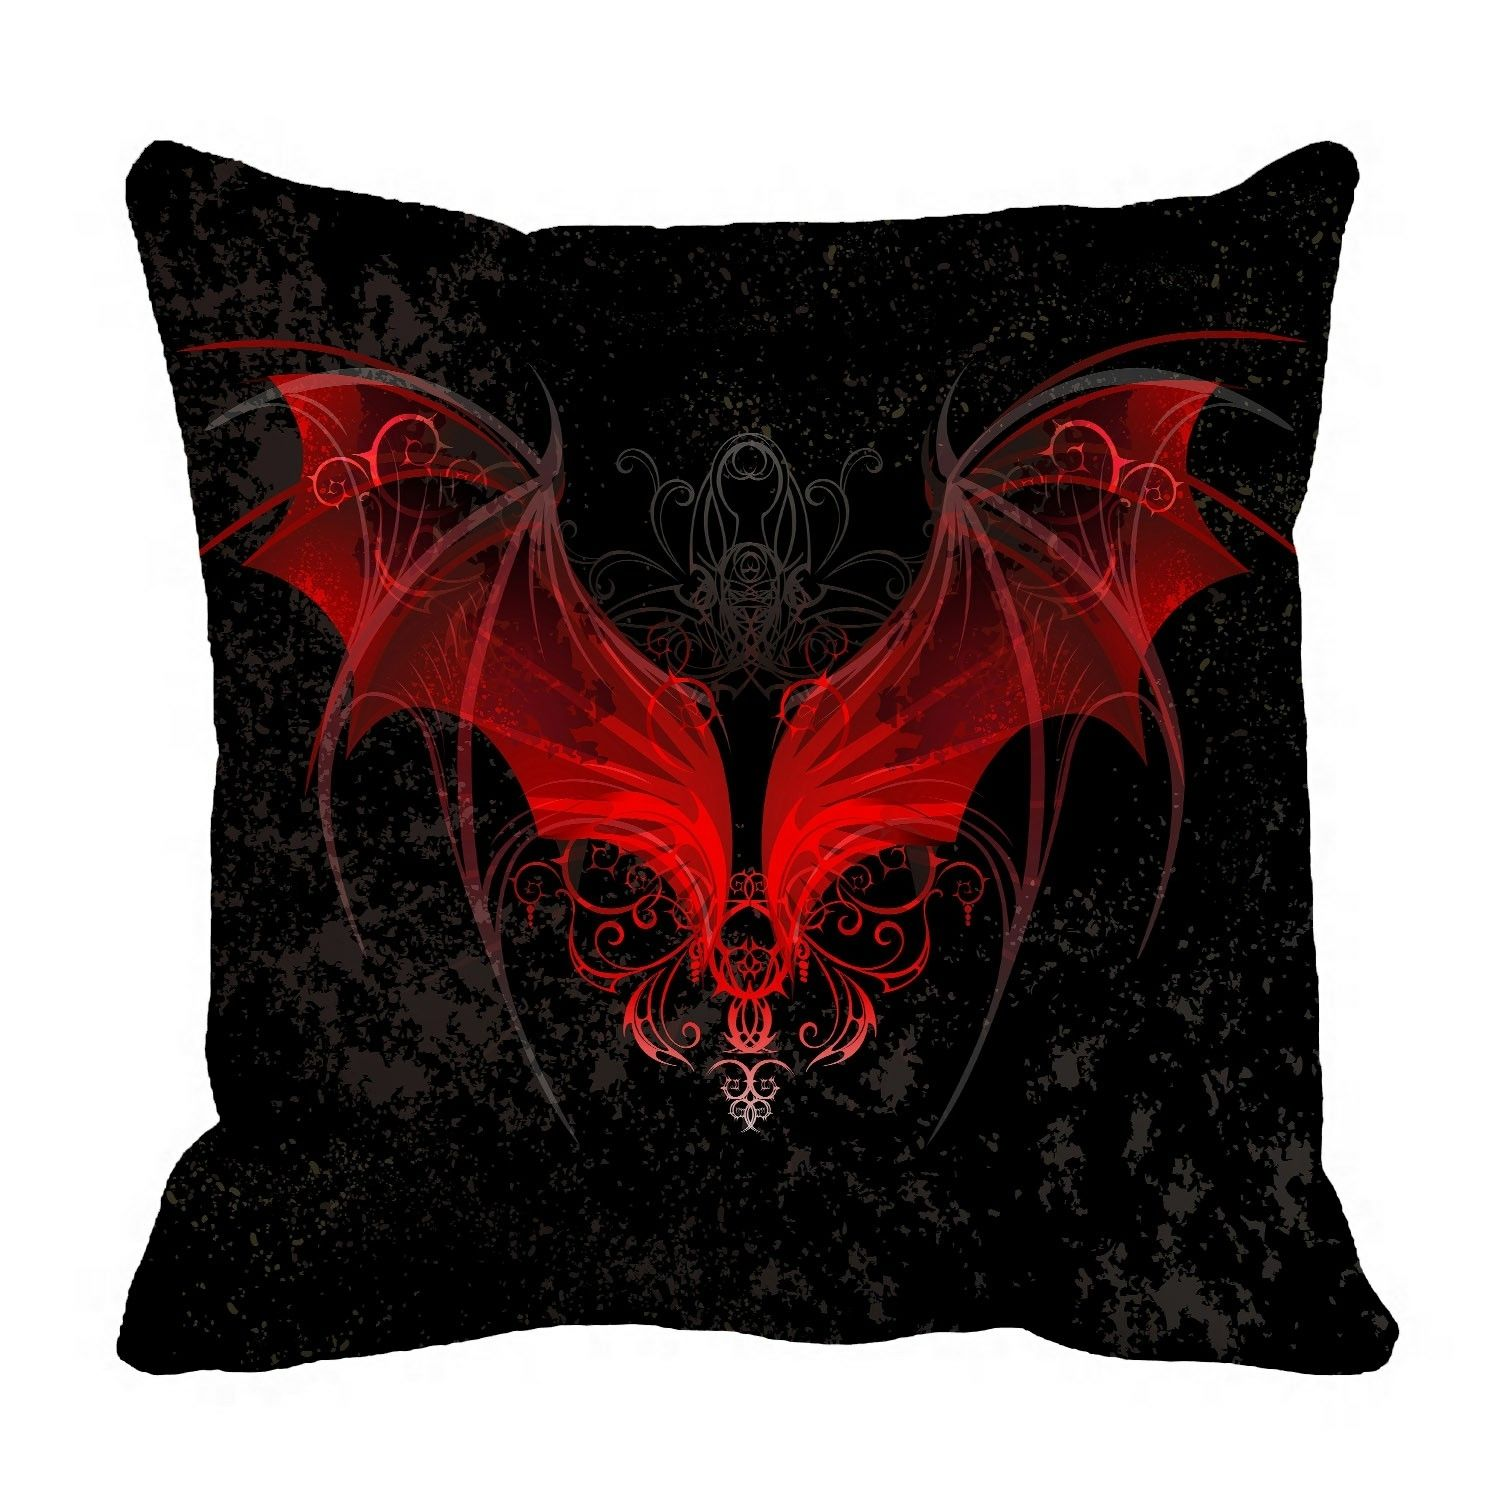 Red dragon wings Pillow?Case?Pillow?Cover?Cushion?Cover